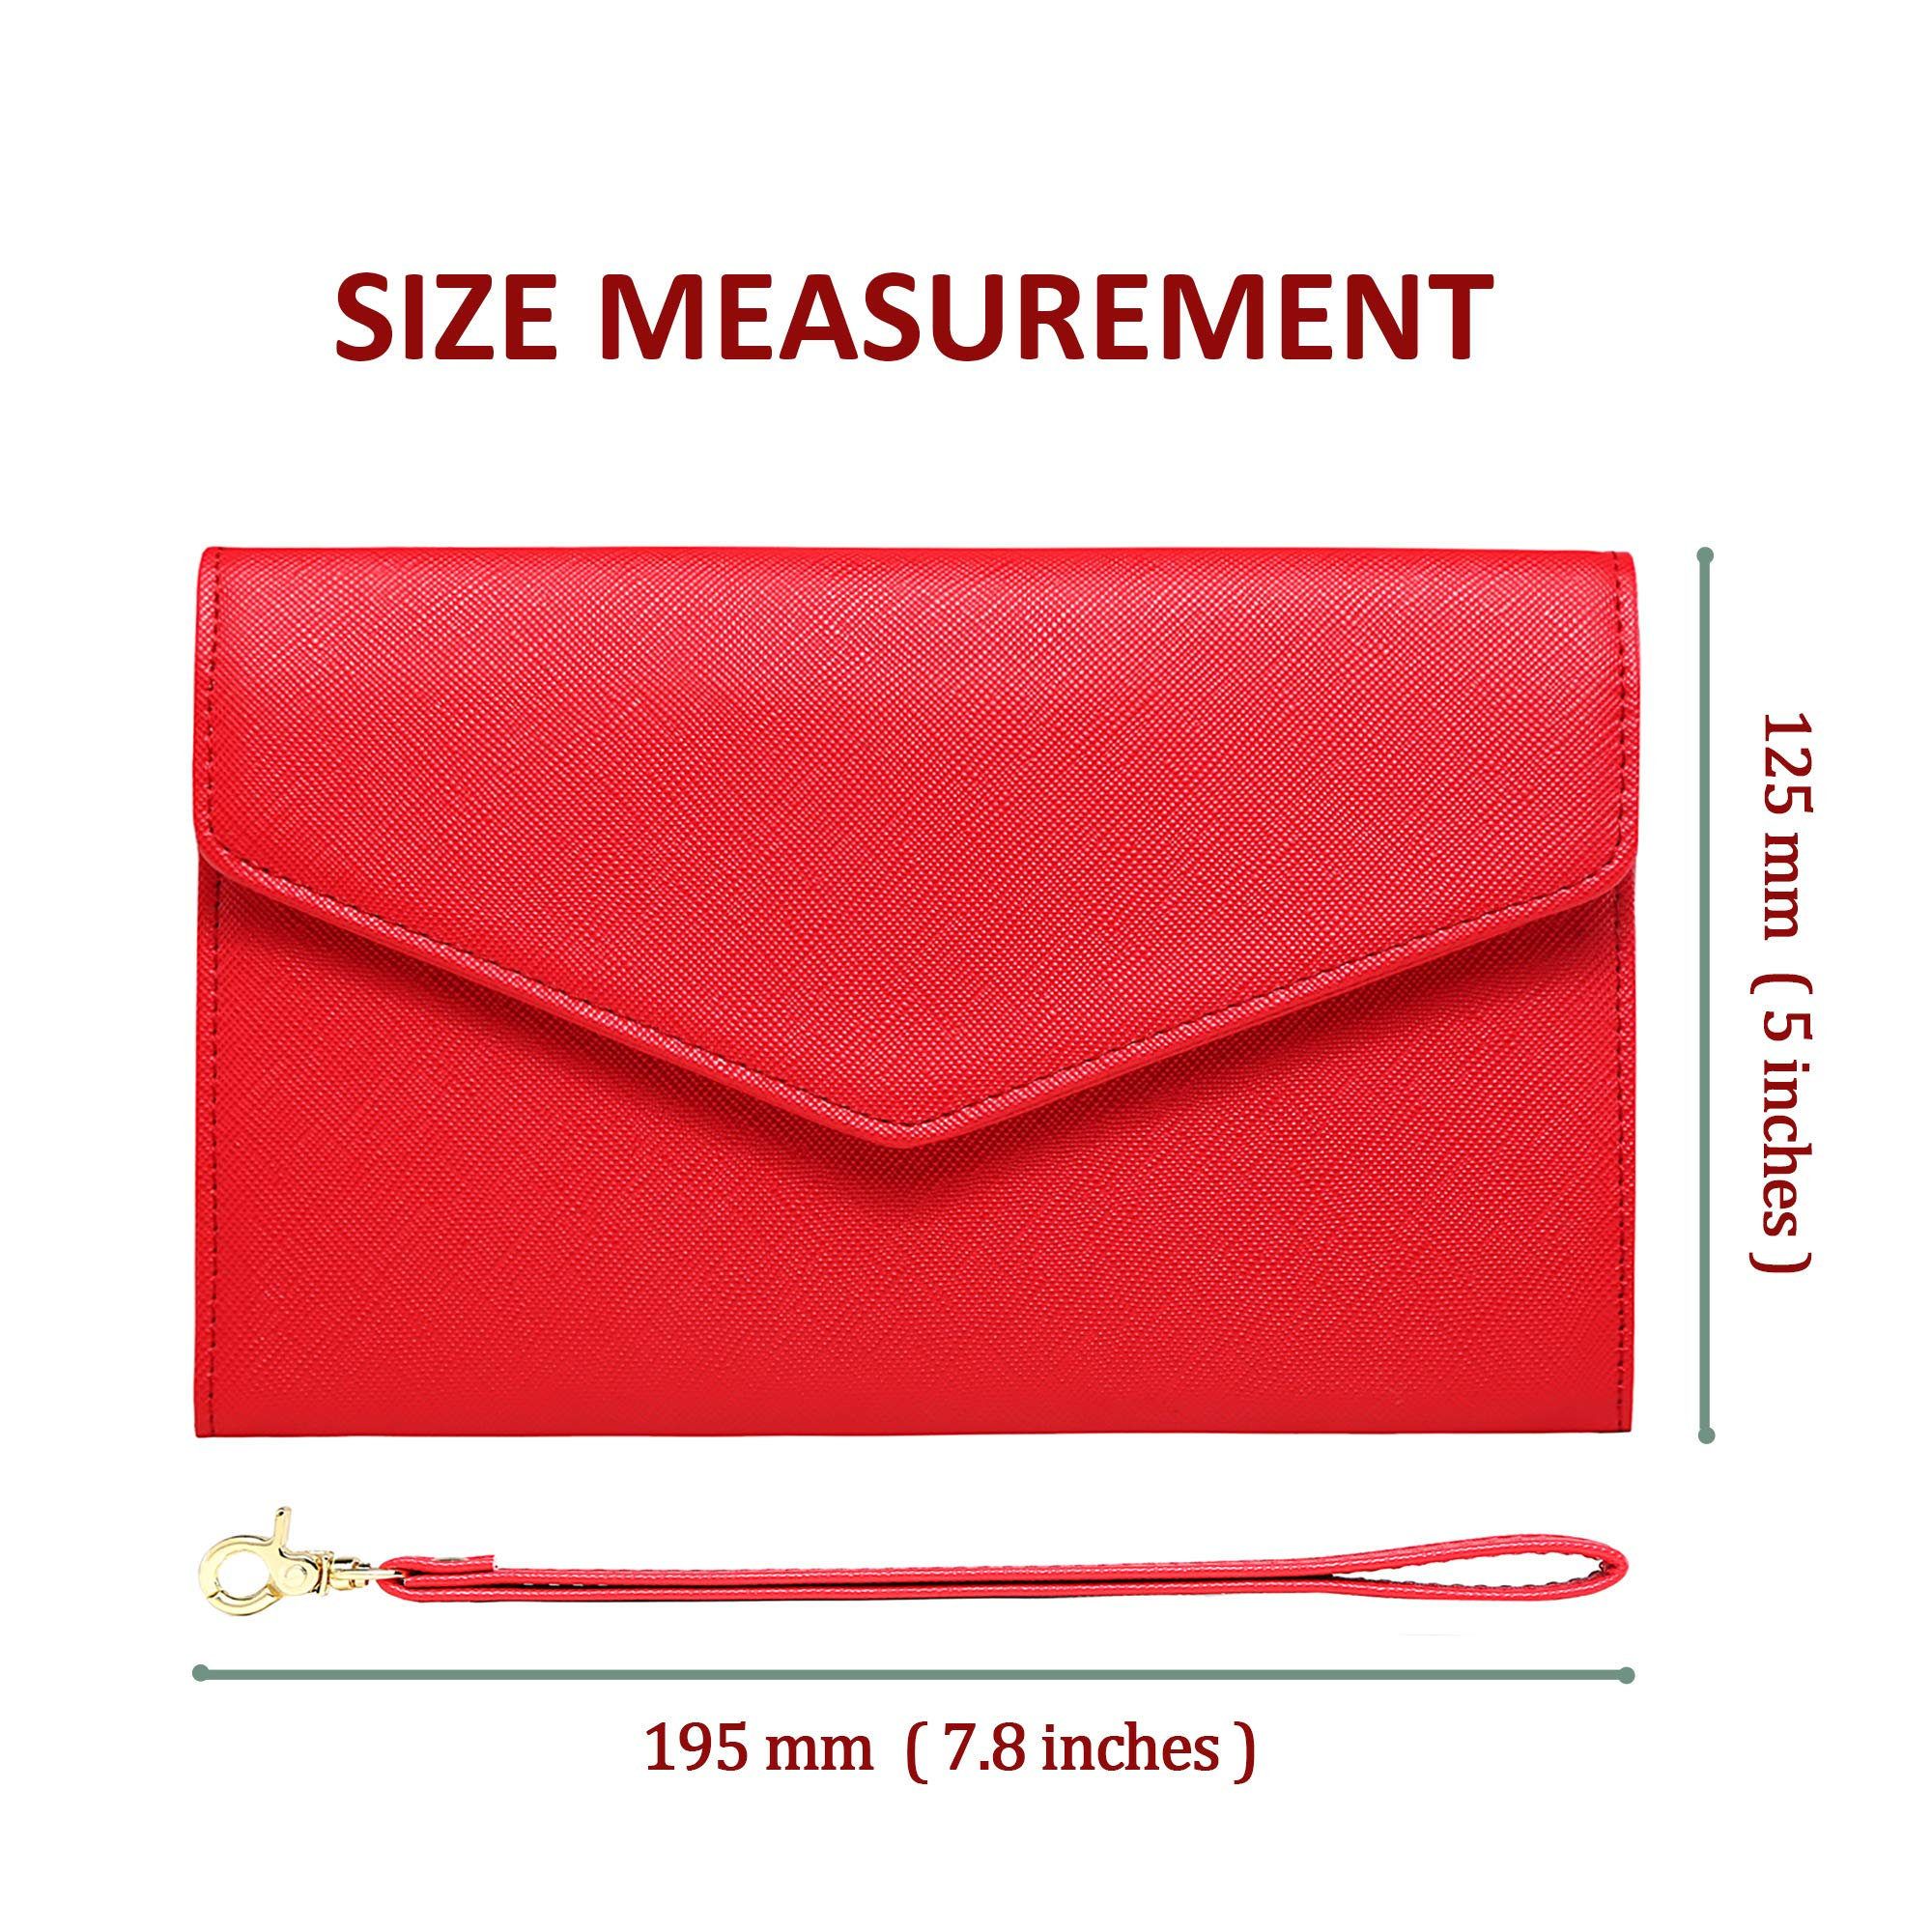 Krosslon Travel Passport Wallet for Women Rfid Wristlet Slim Family Document Holder, 11# Agate Red by KROSSLON (Image #5)